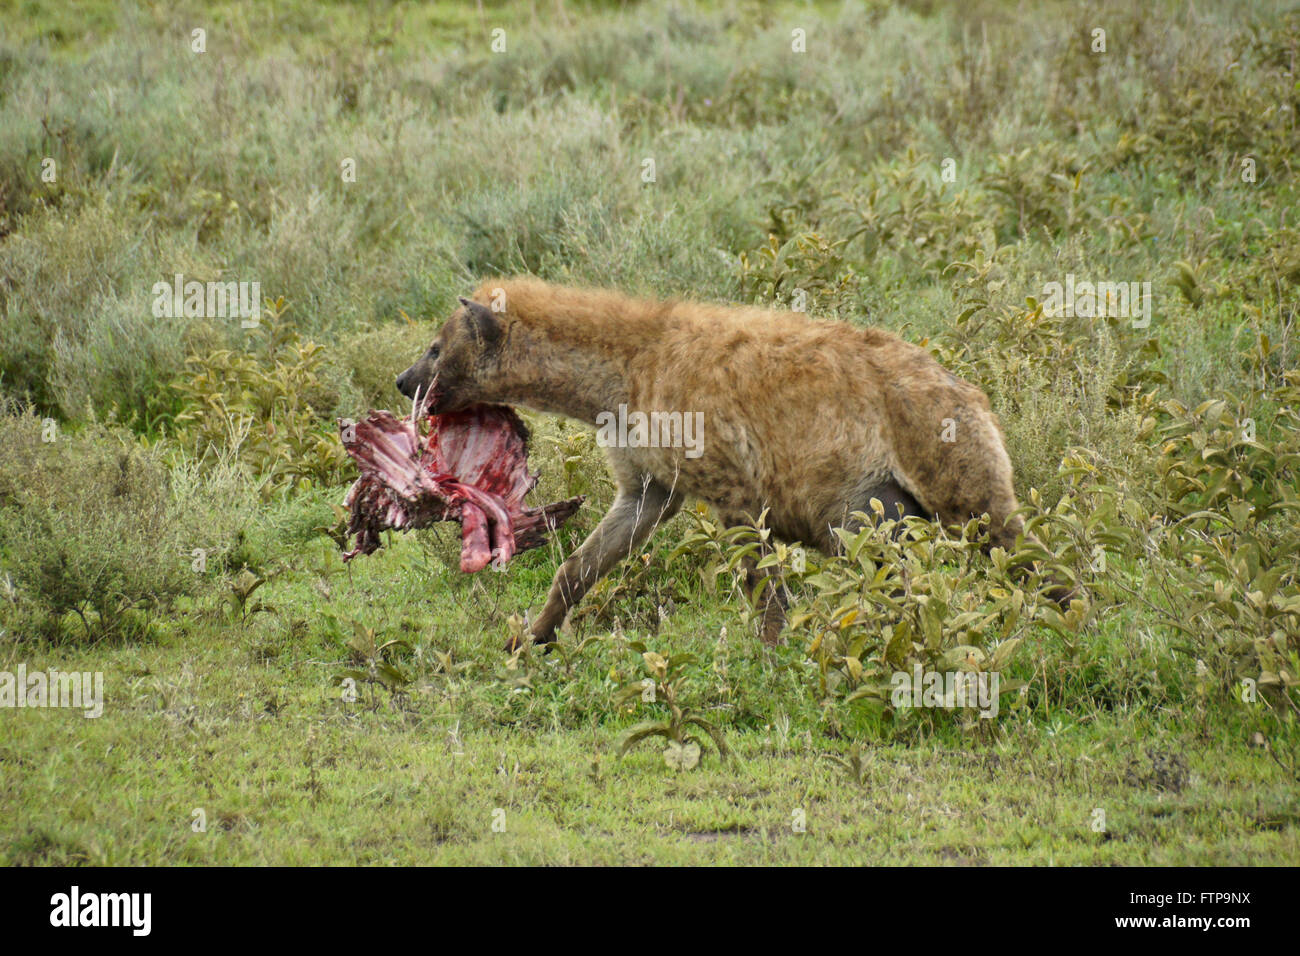 Pregnant spotted hyena carrying ribcage of wildebeest, Ngorongoro Conservation Area (Ndutu), Tanzania - Stock Image